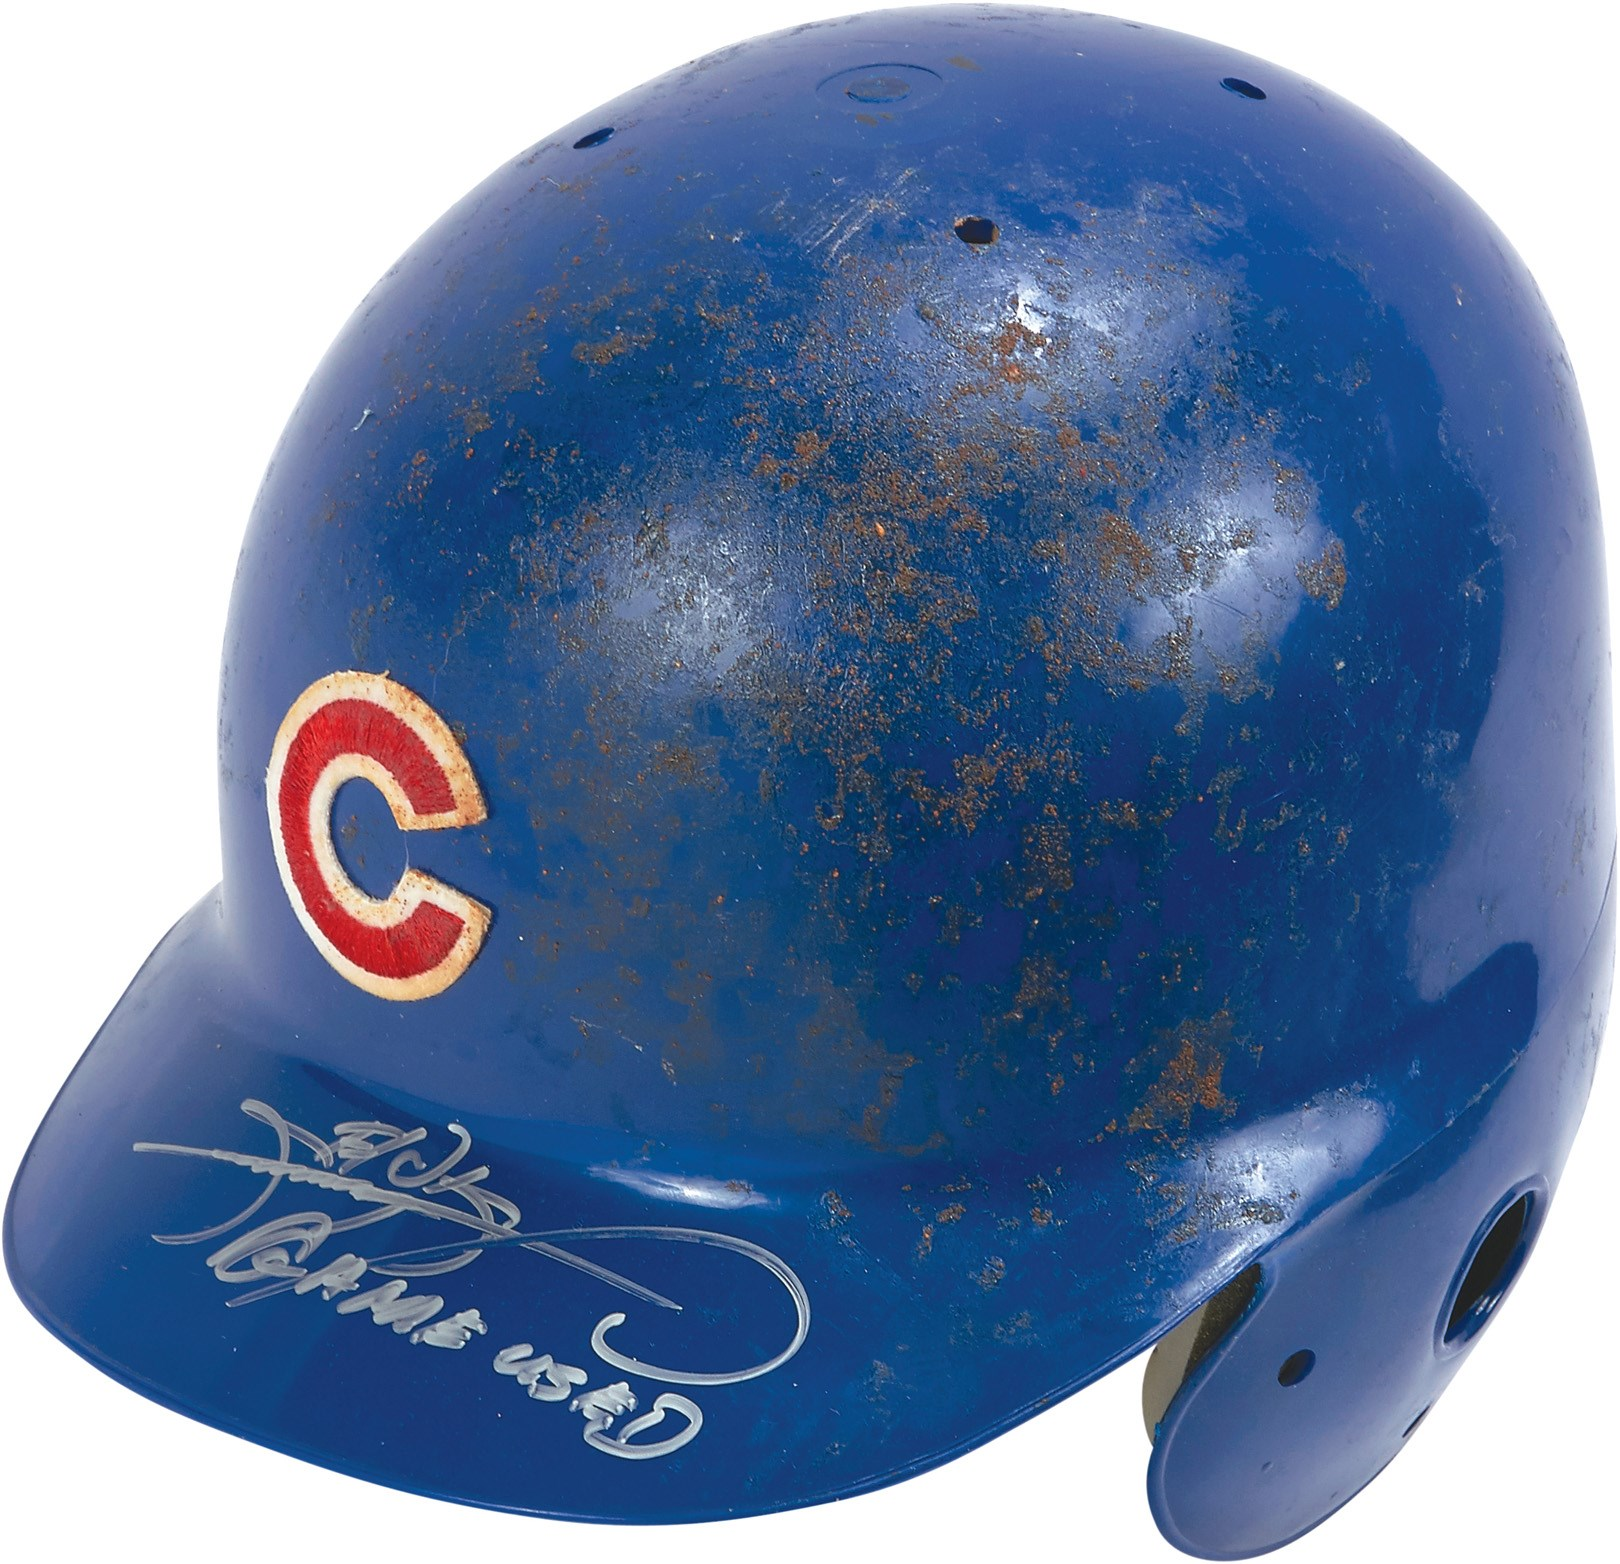 Chicago Cubs & Wrigley Field - auction